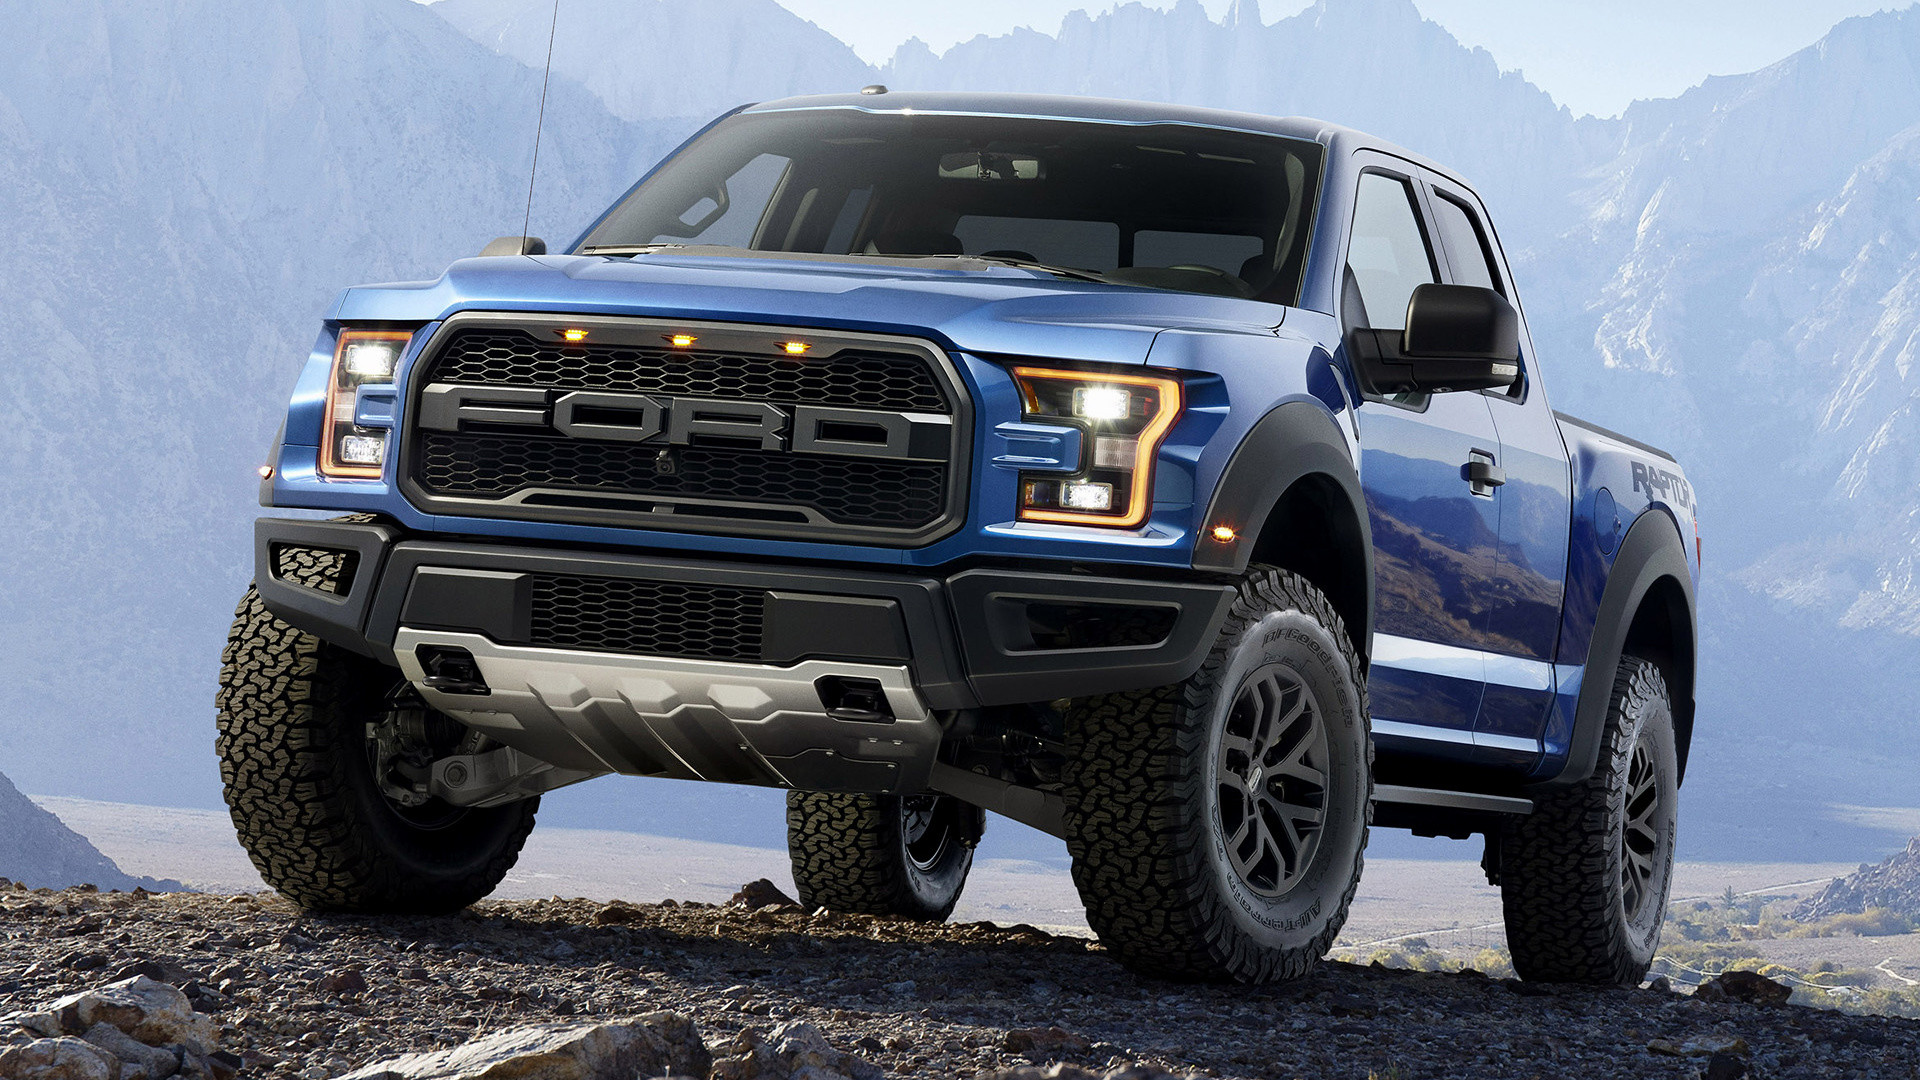 1920x1080 Ford f 150 raptor supercab pictures hd.